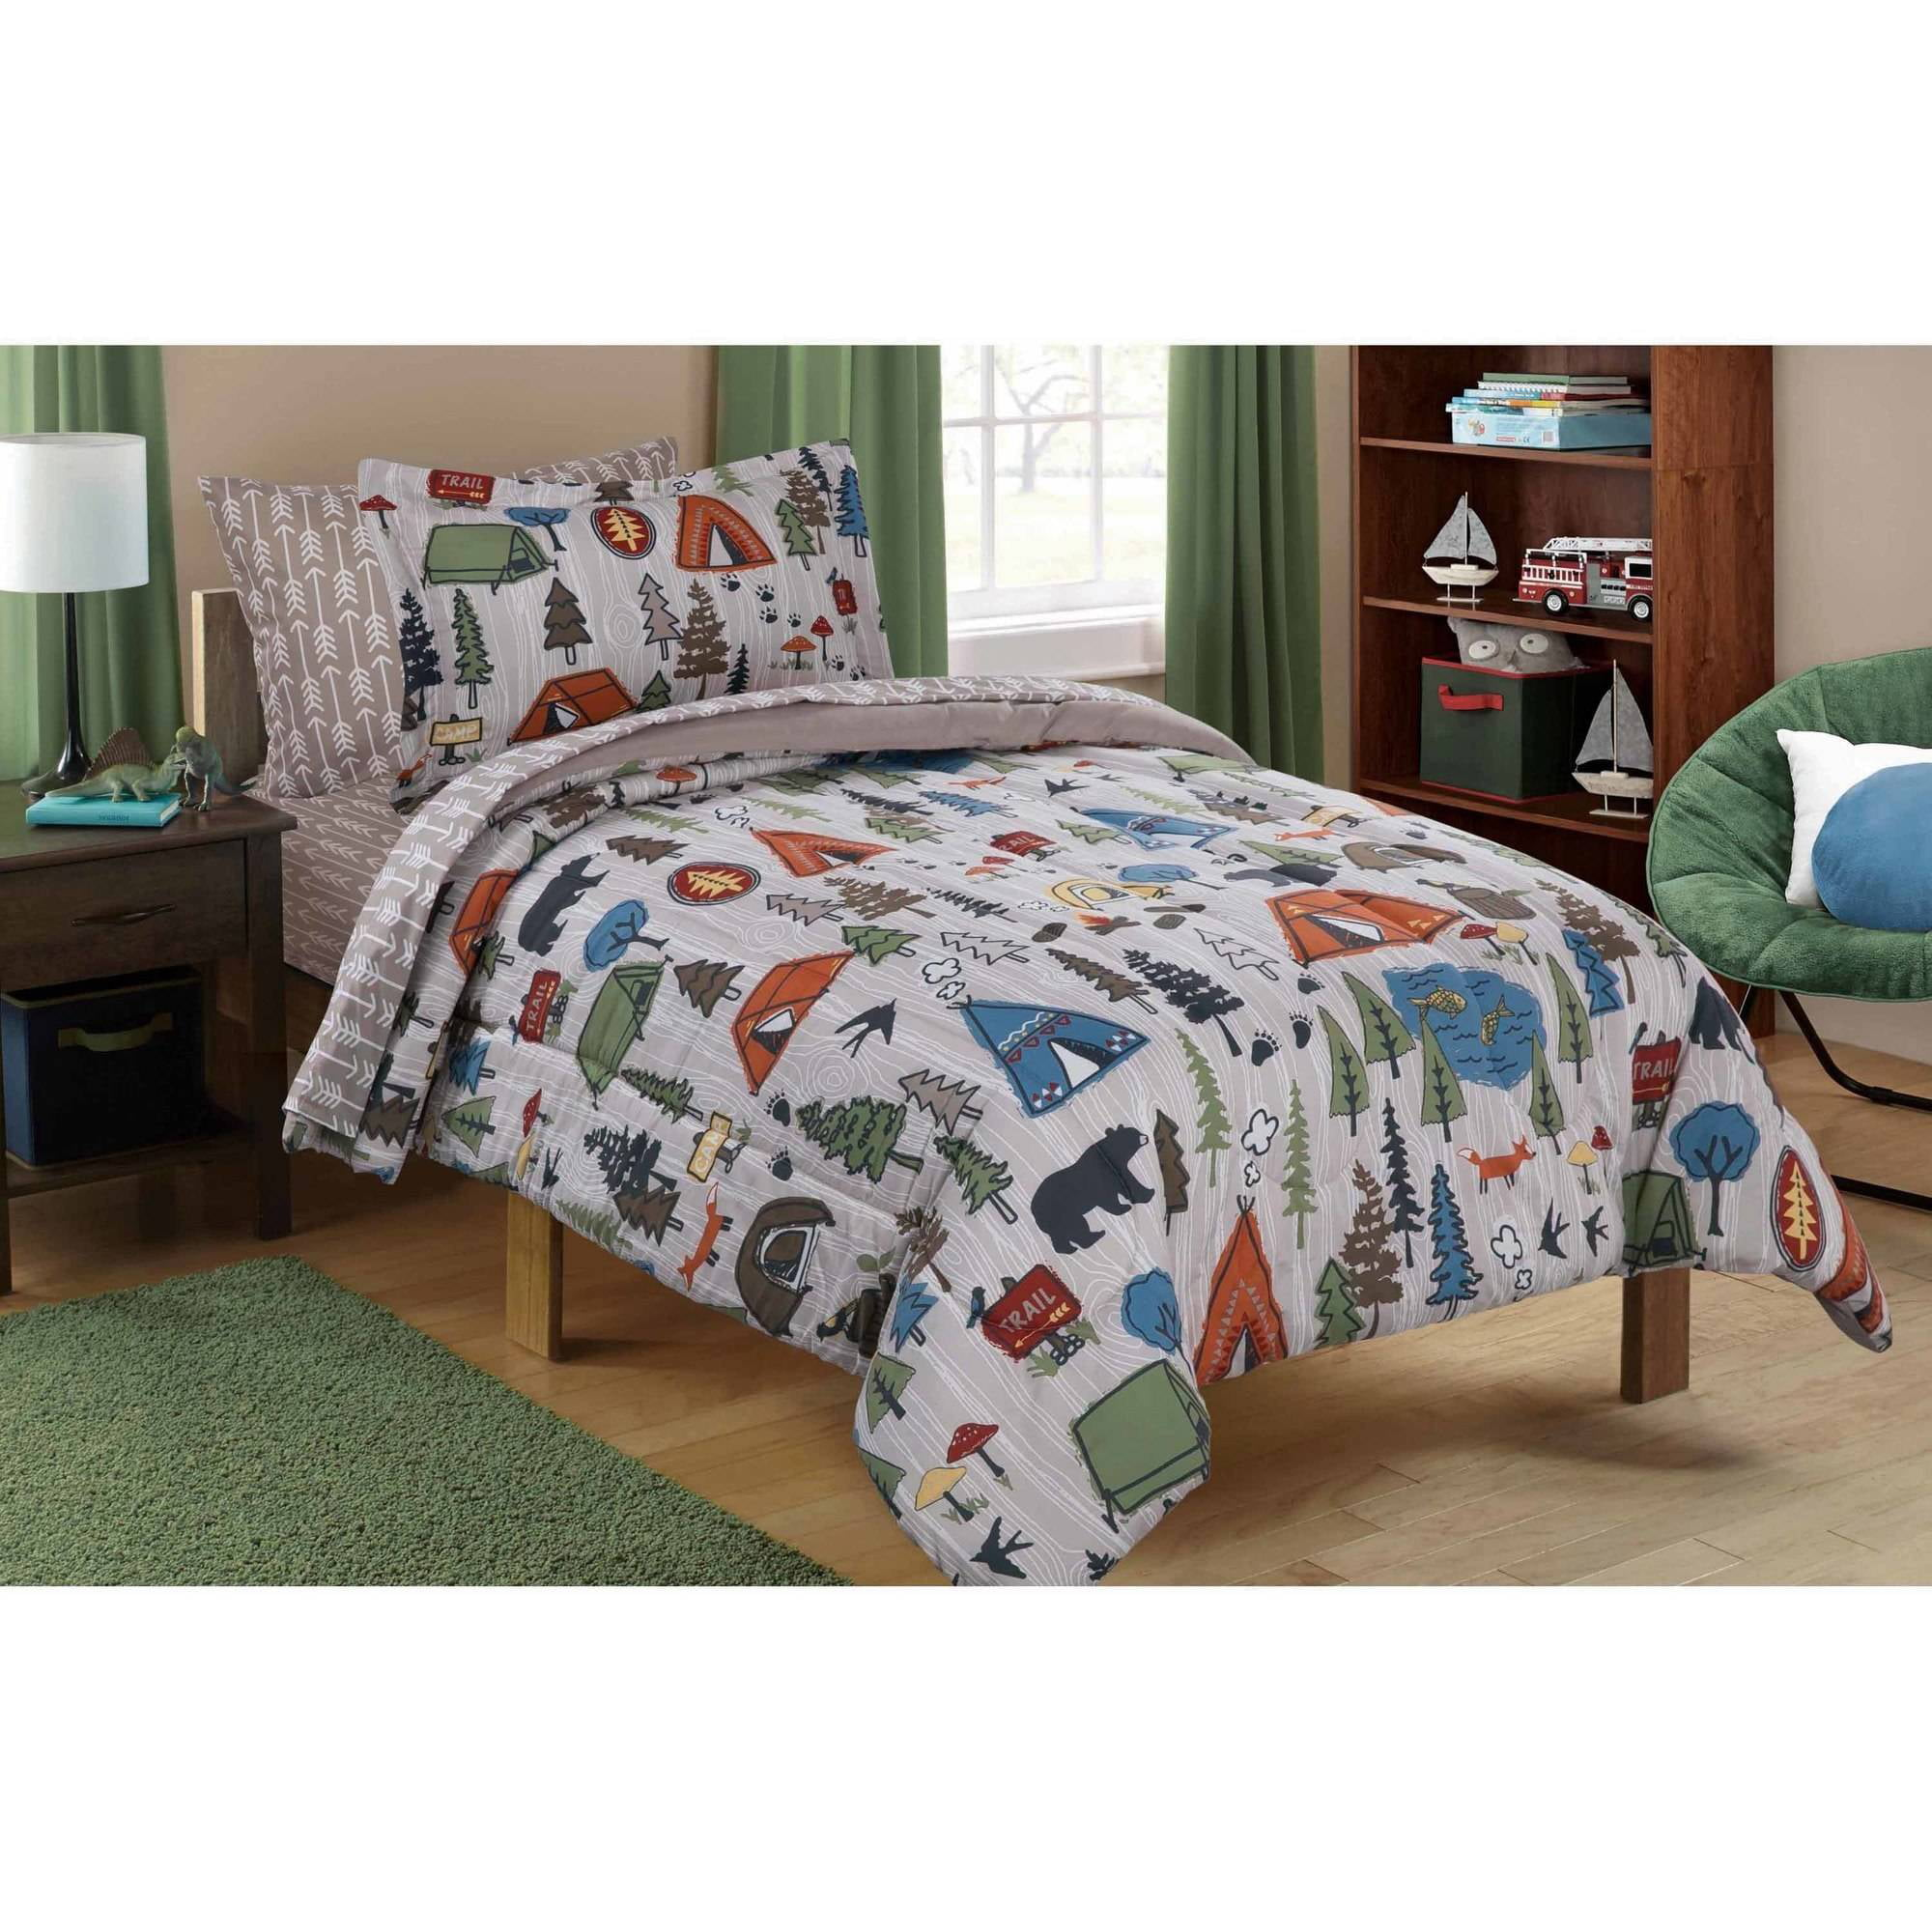 Mainstays Kids Camping Bed In A Bag Walmart Com Walmart Com